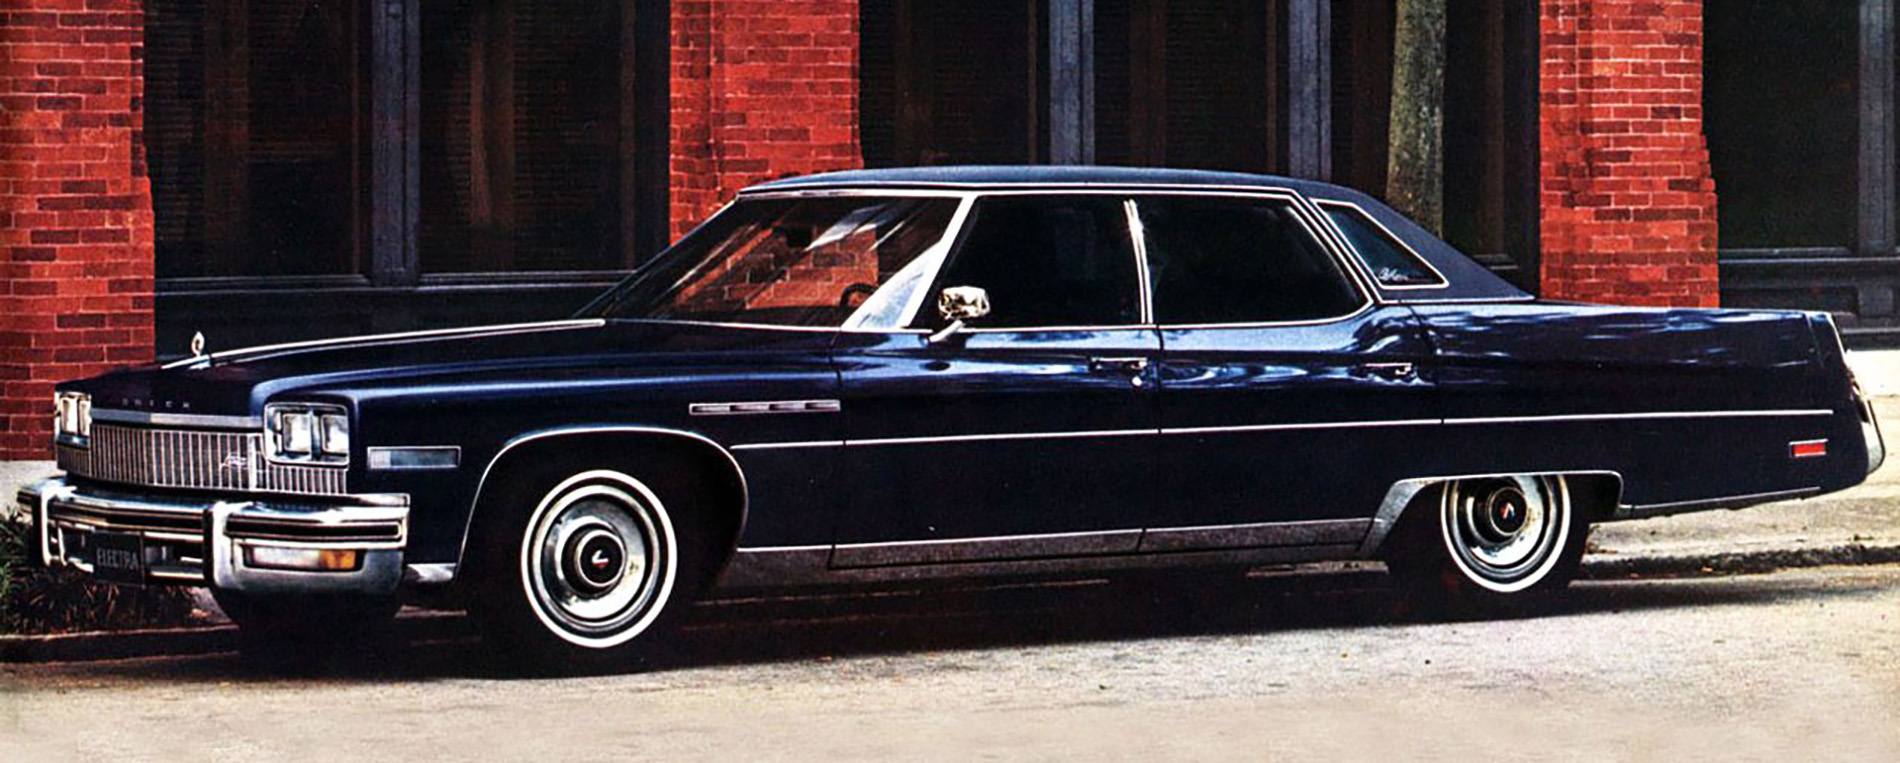 1975 Buick Electra Limited